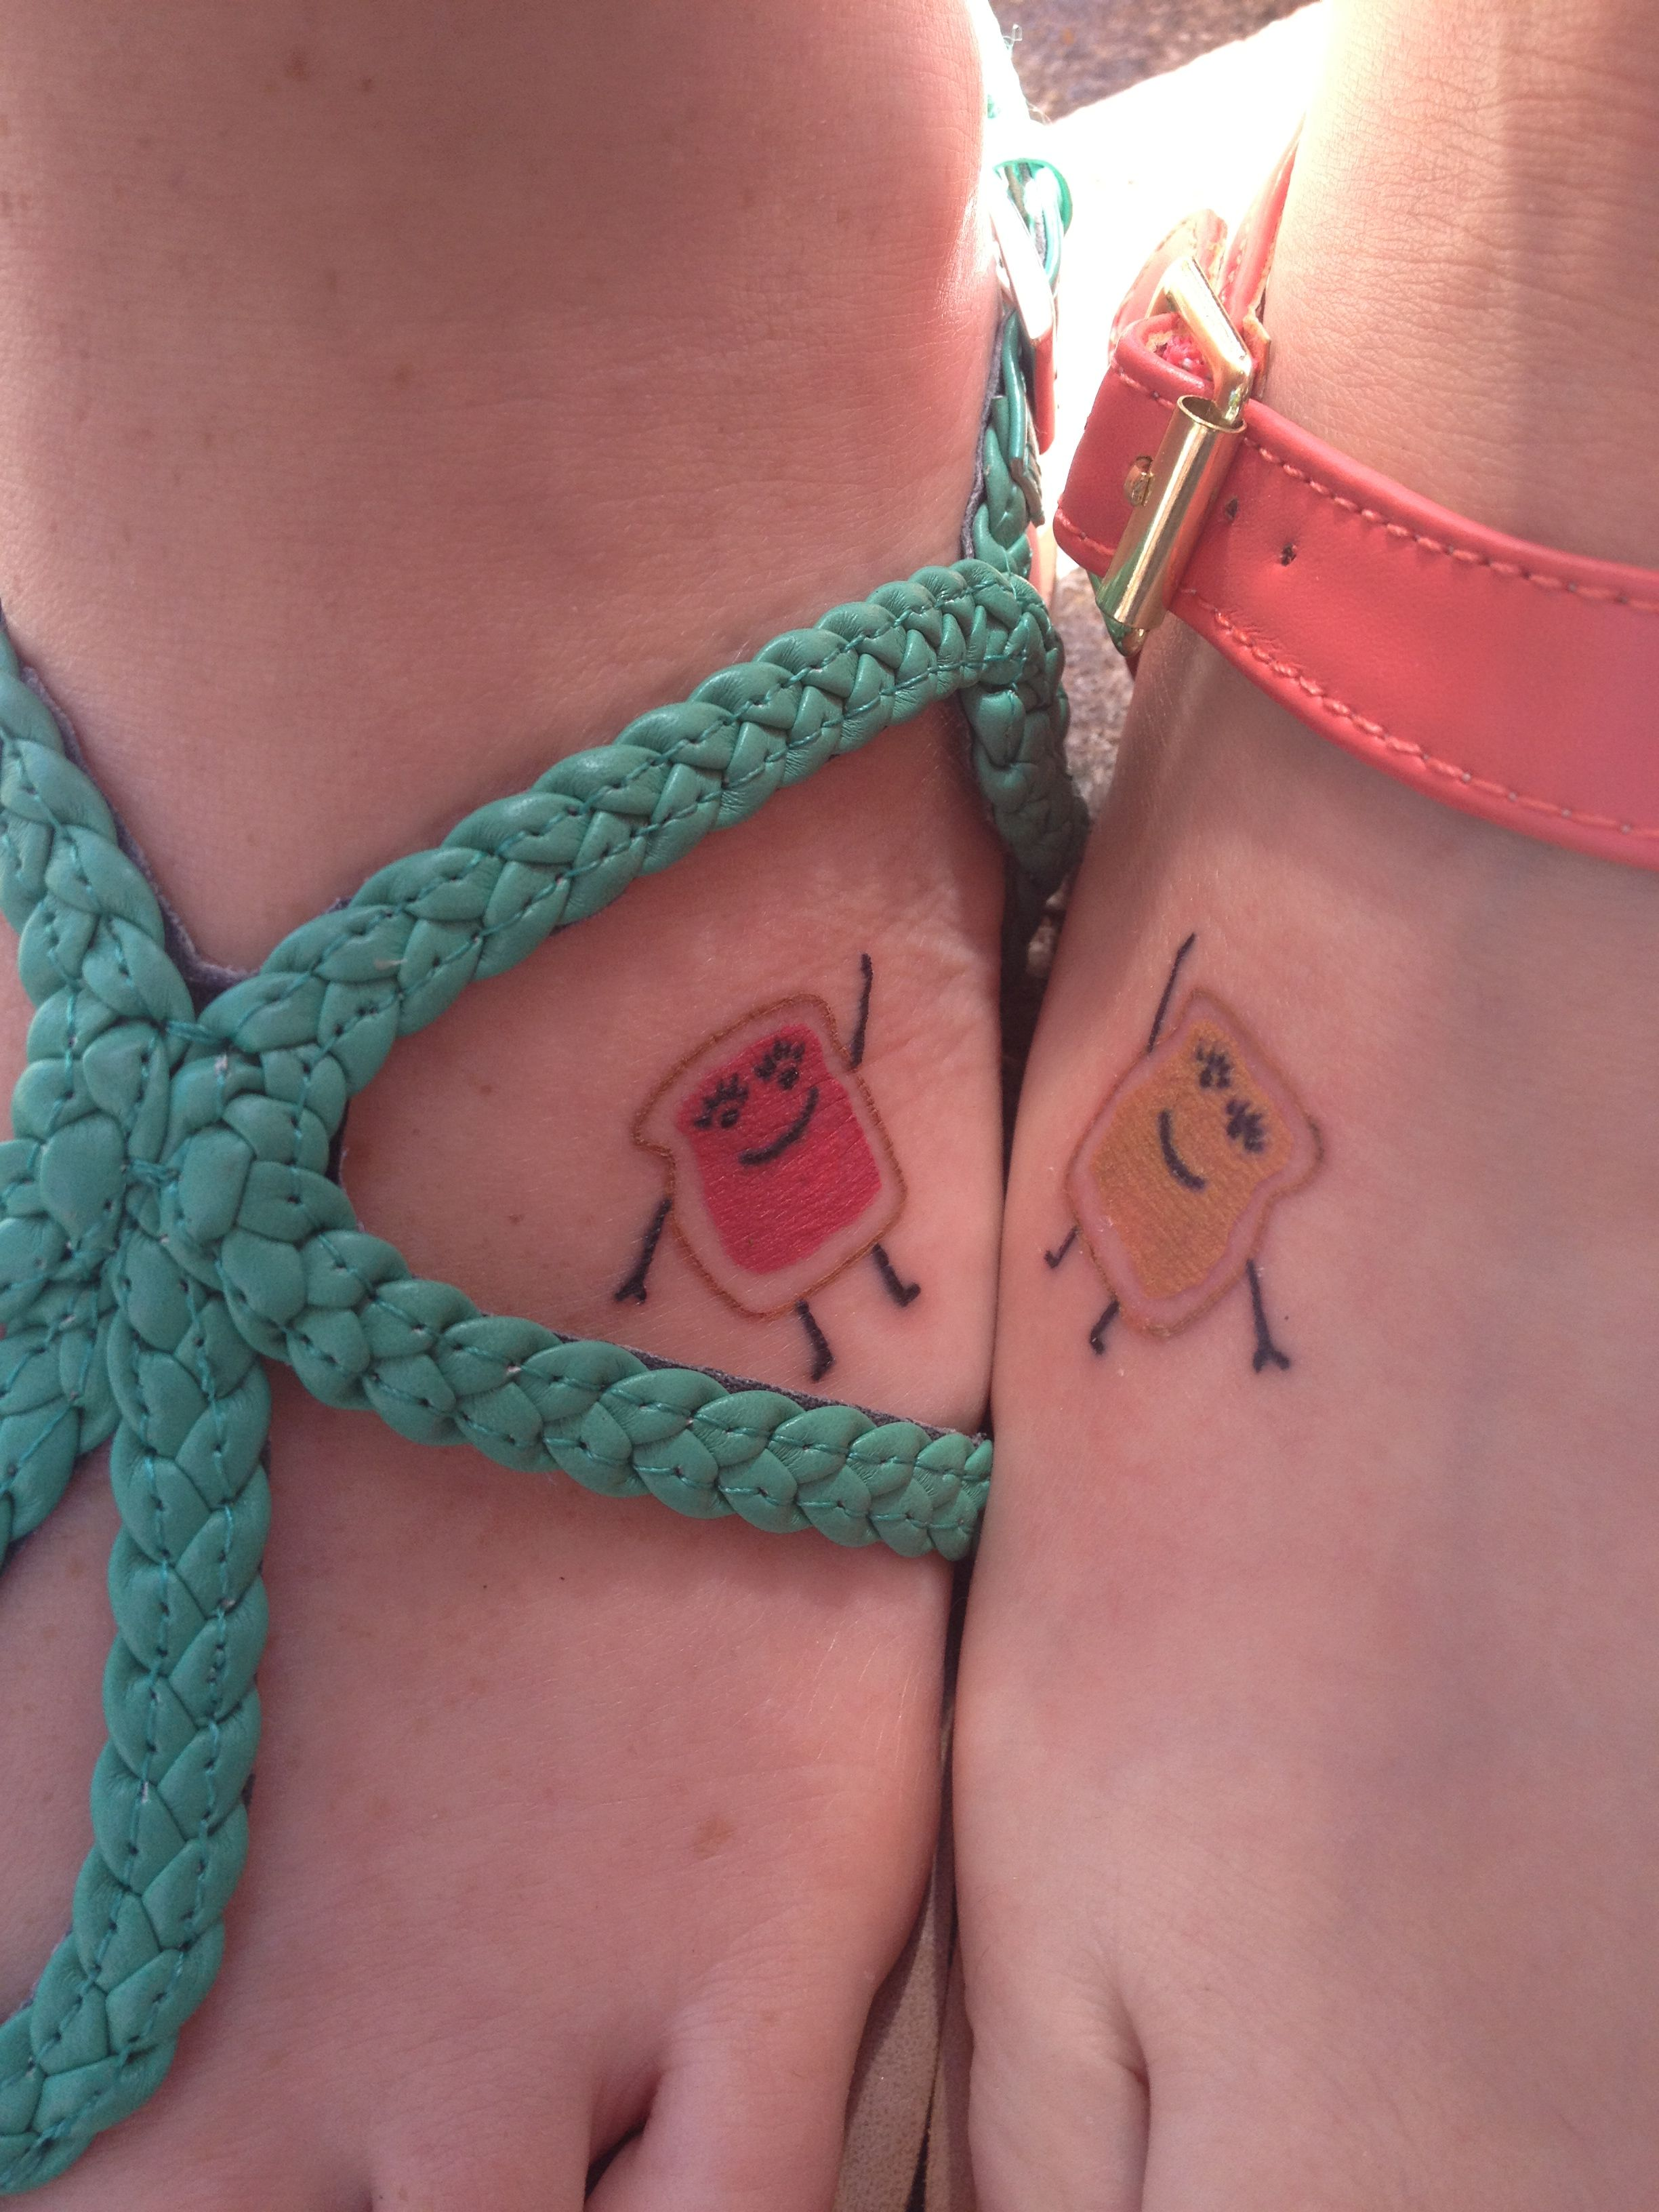 30 Best Friend Tattoos Ideas | Friend tattoos, Bestest friend and Tattoo